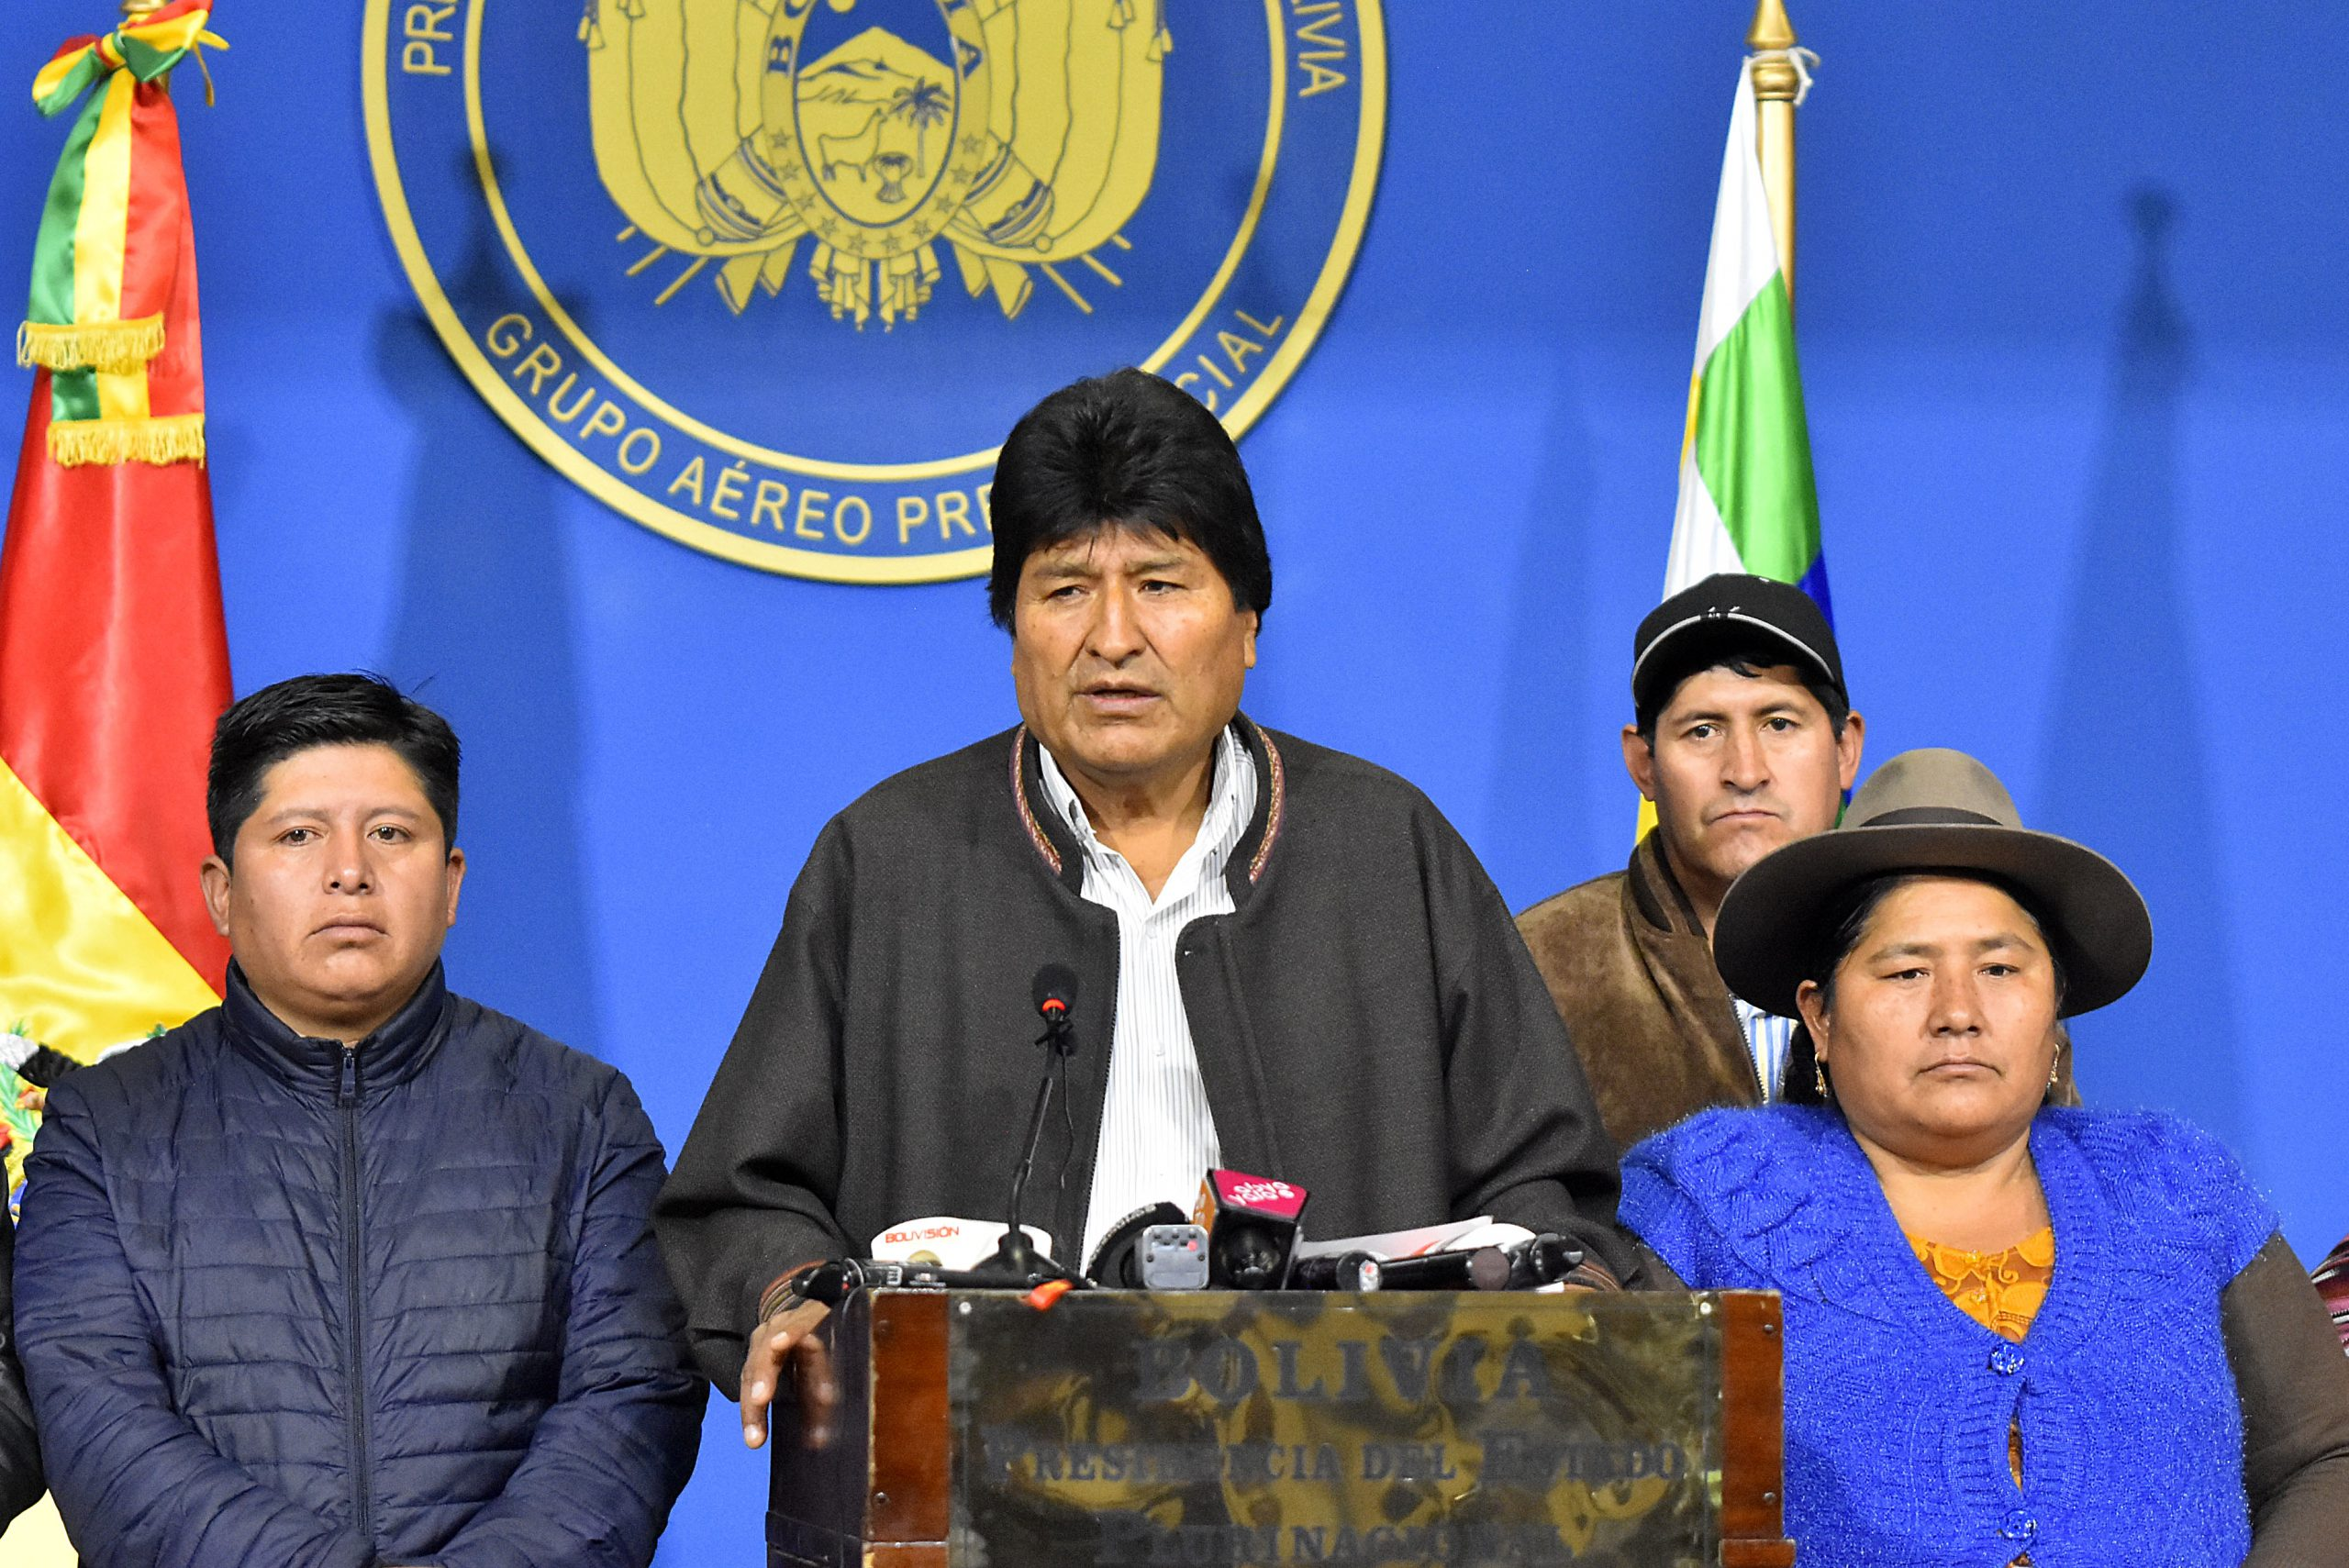 The president of the Chamber of Deputies of Bolivia resigns and denounces that his brother has been kidnapped